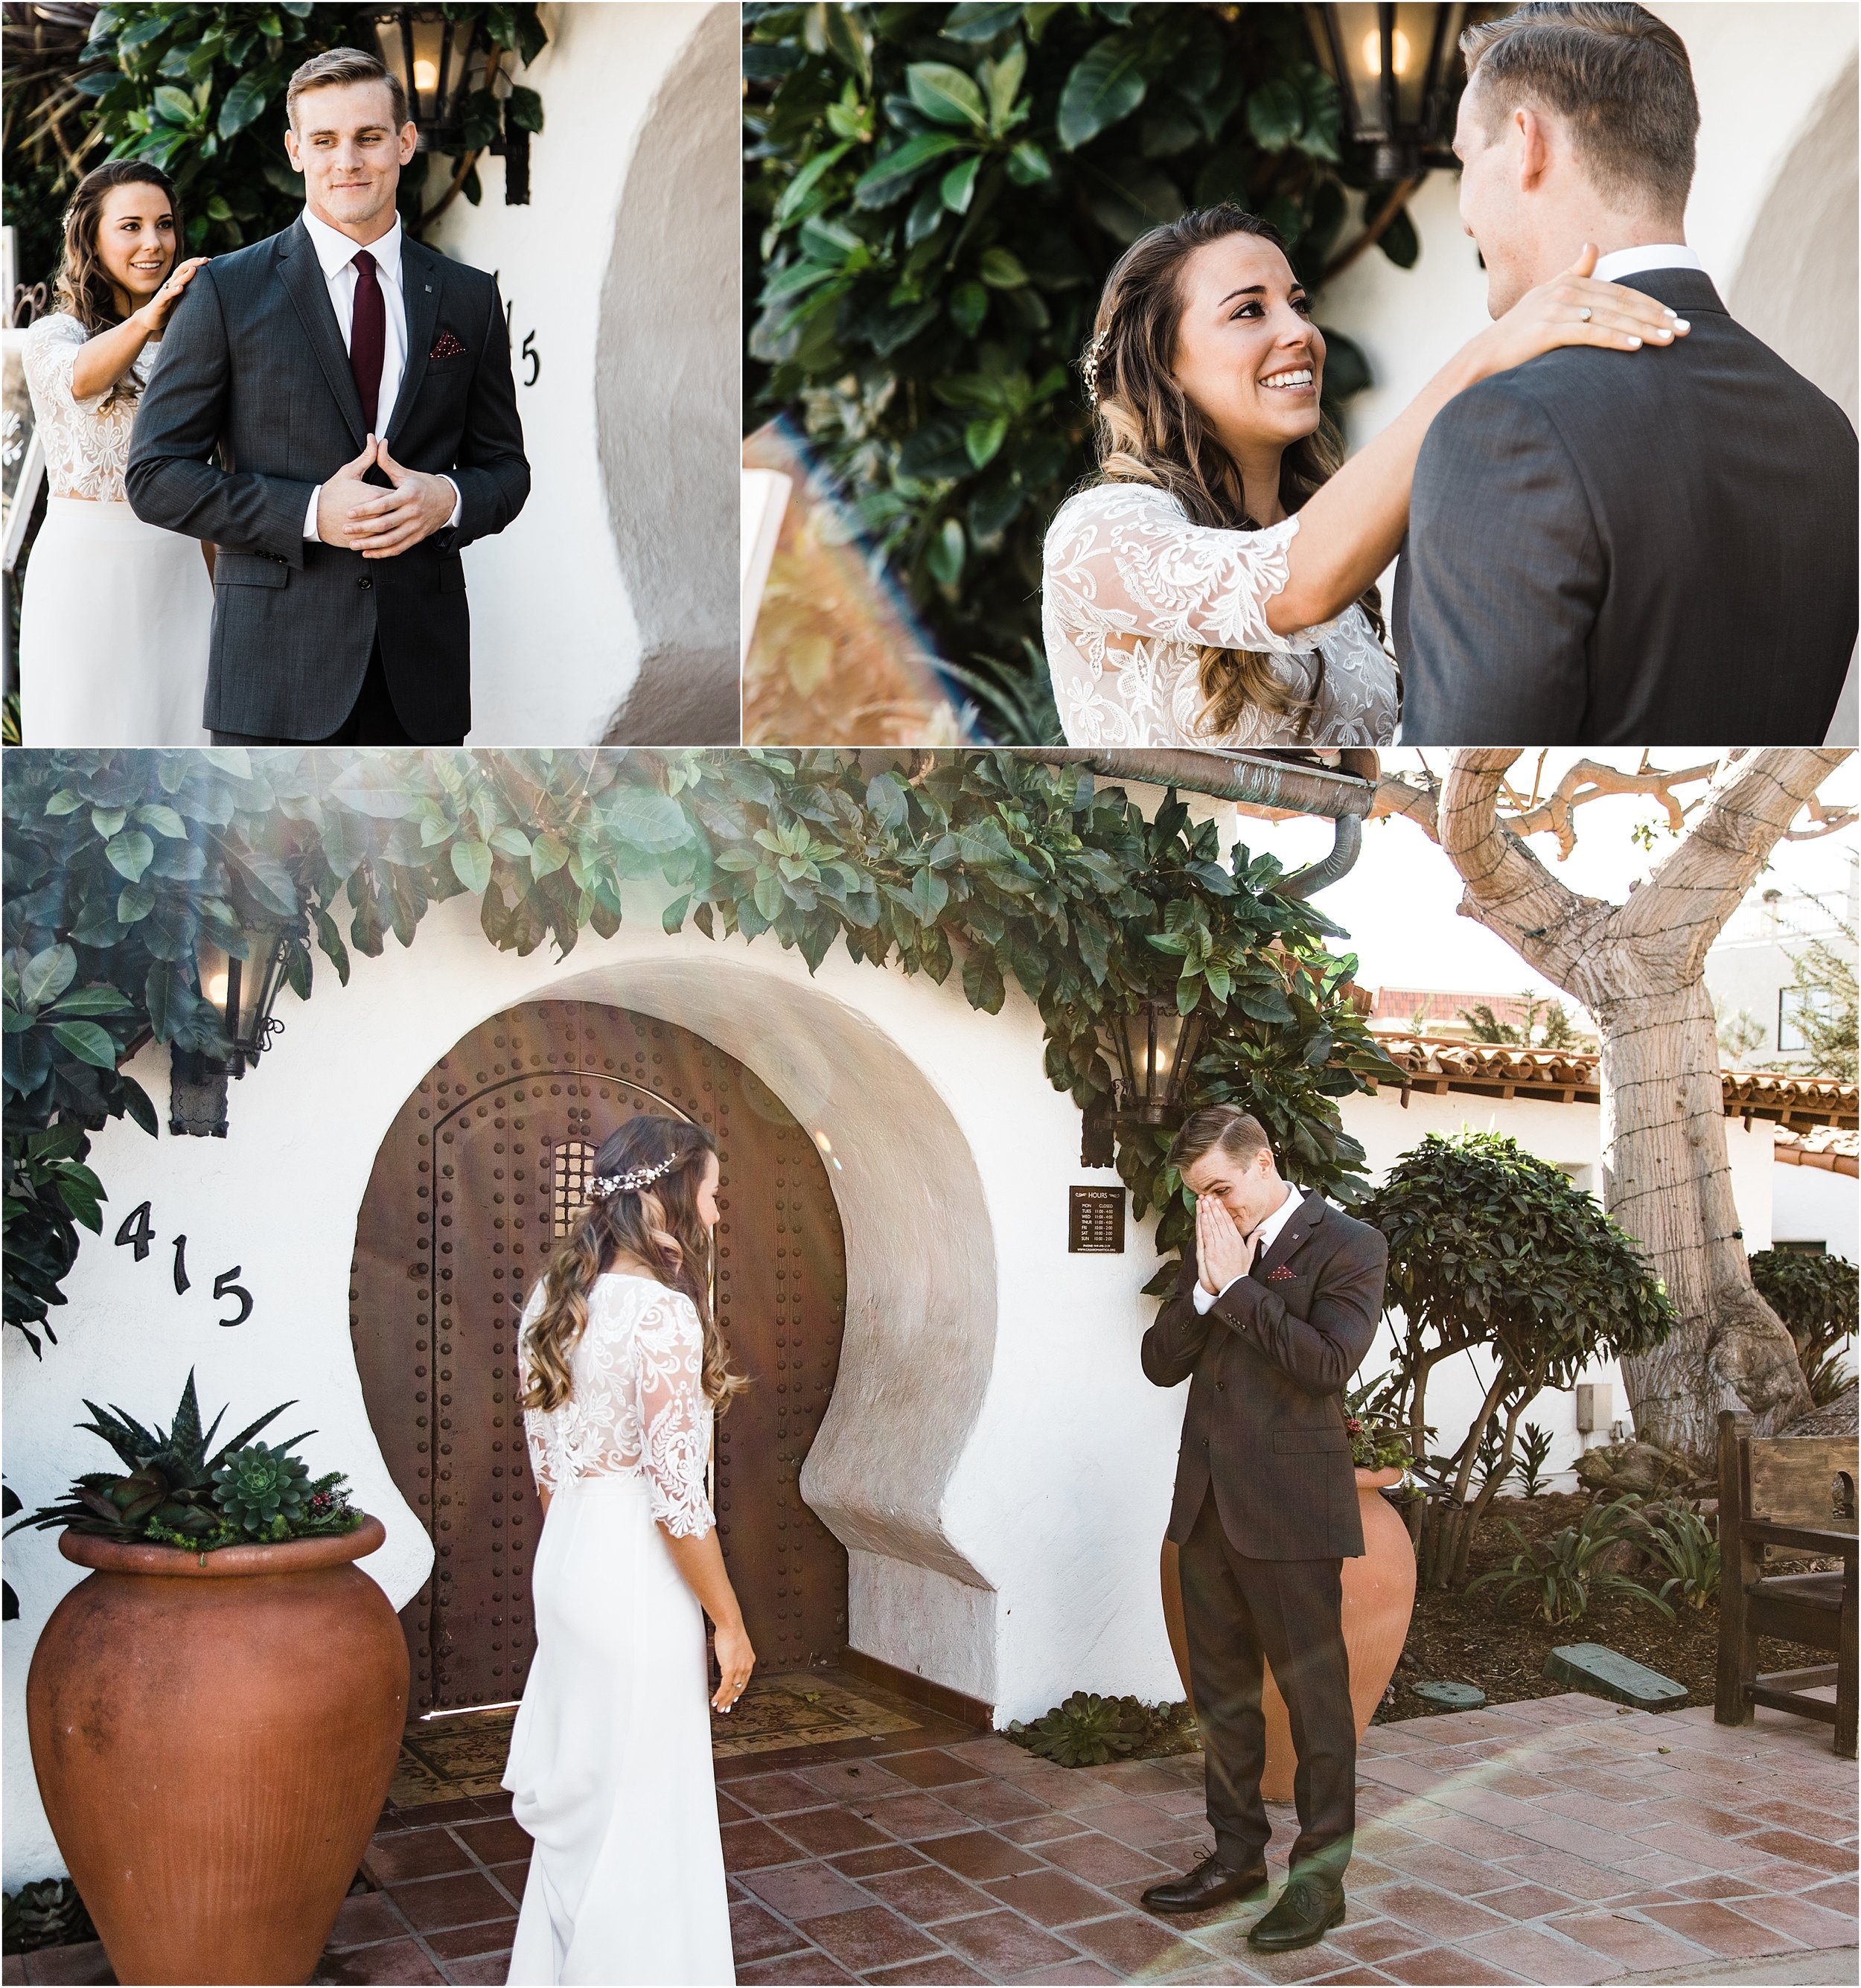 5-Reasons-To-Do-A-First-Look-Inspiration-Clarisse-Rae-Southern-California-Wedding-Photographer-3.jpg